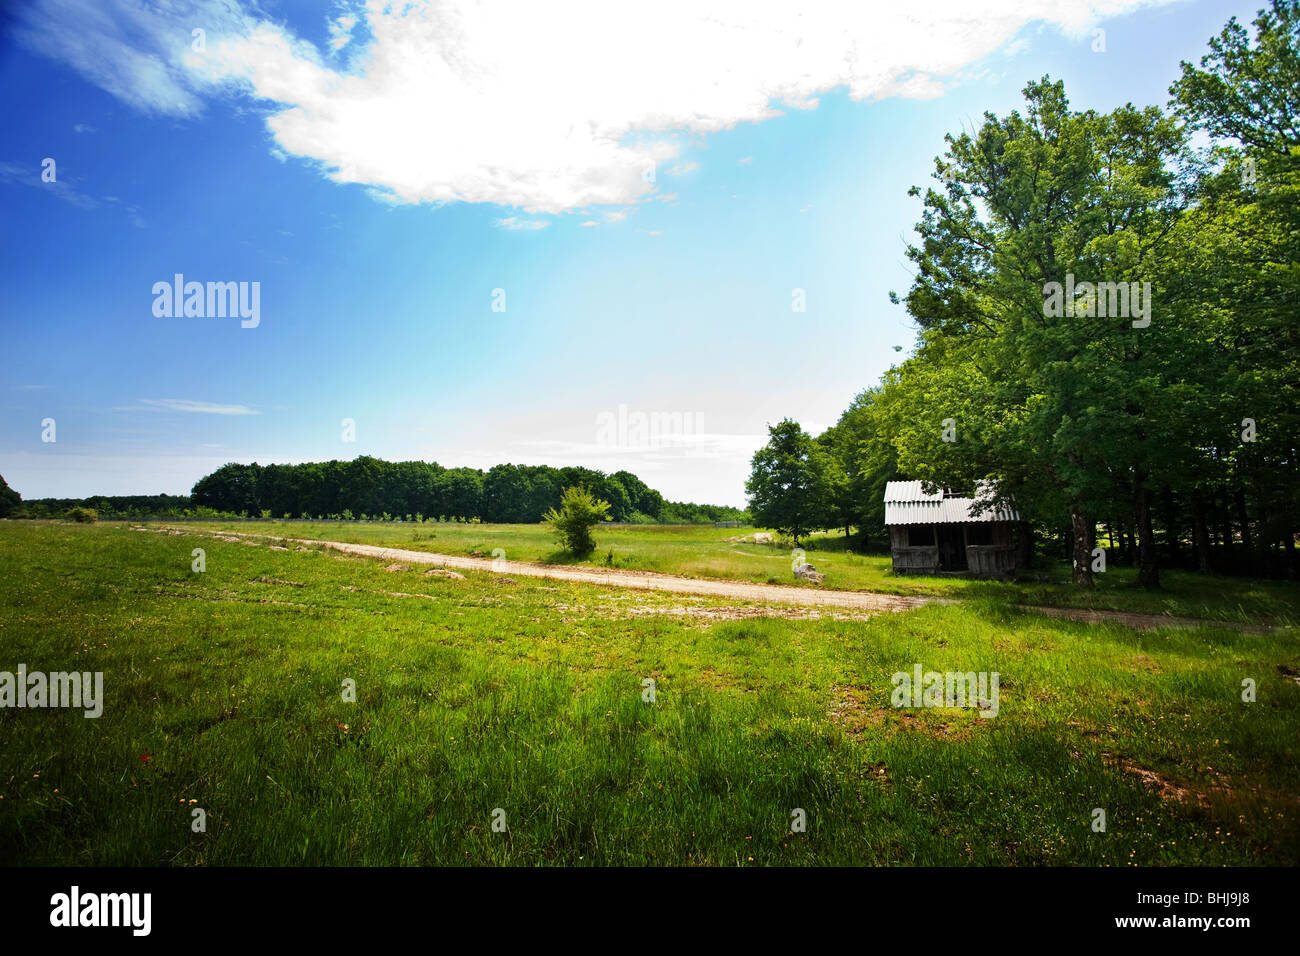 Landscape with forest and grassfield under blue sky - Stock Image